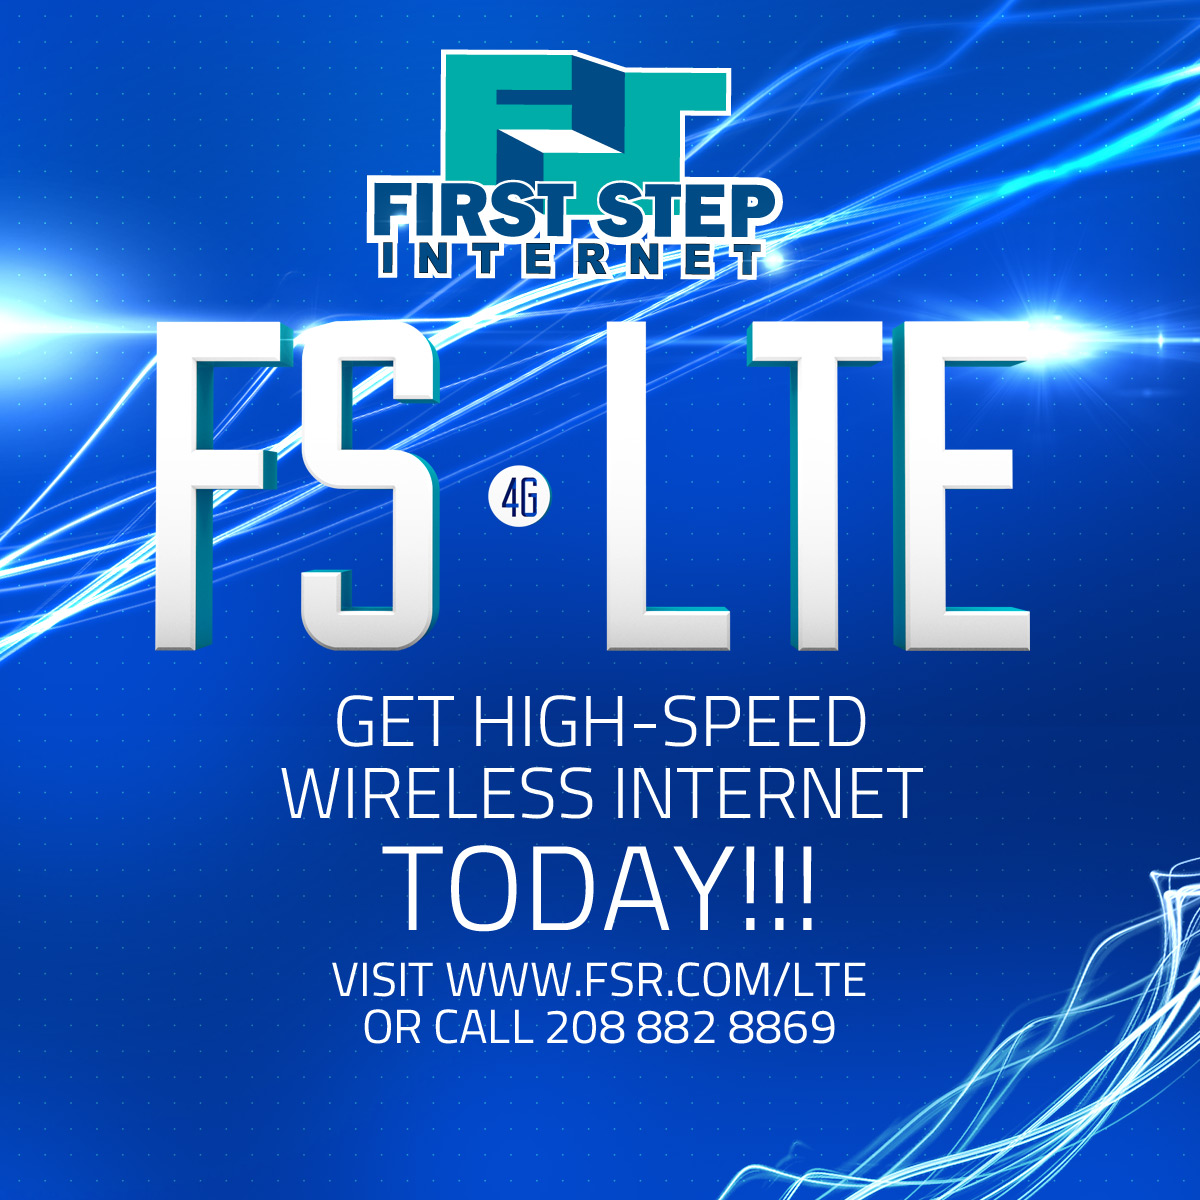 First Step Internet